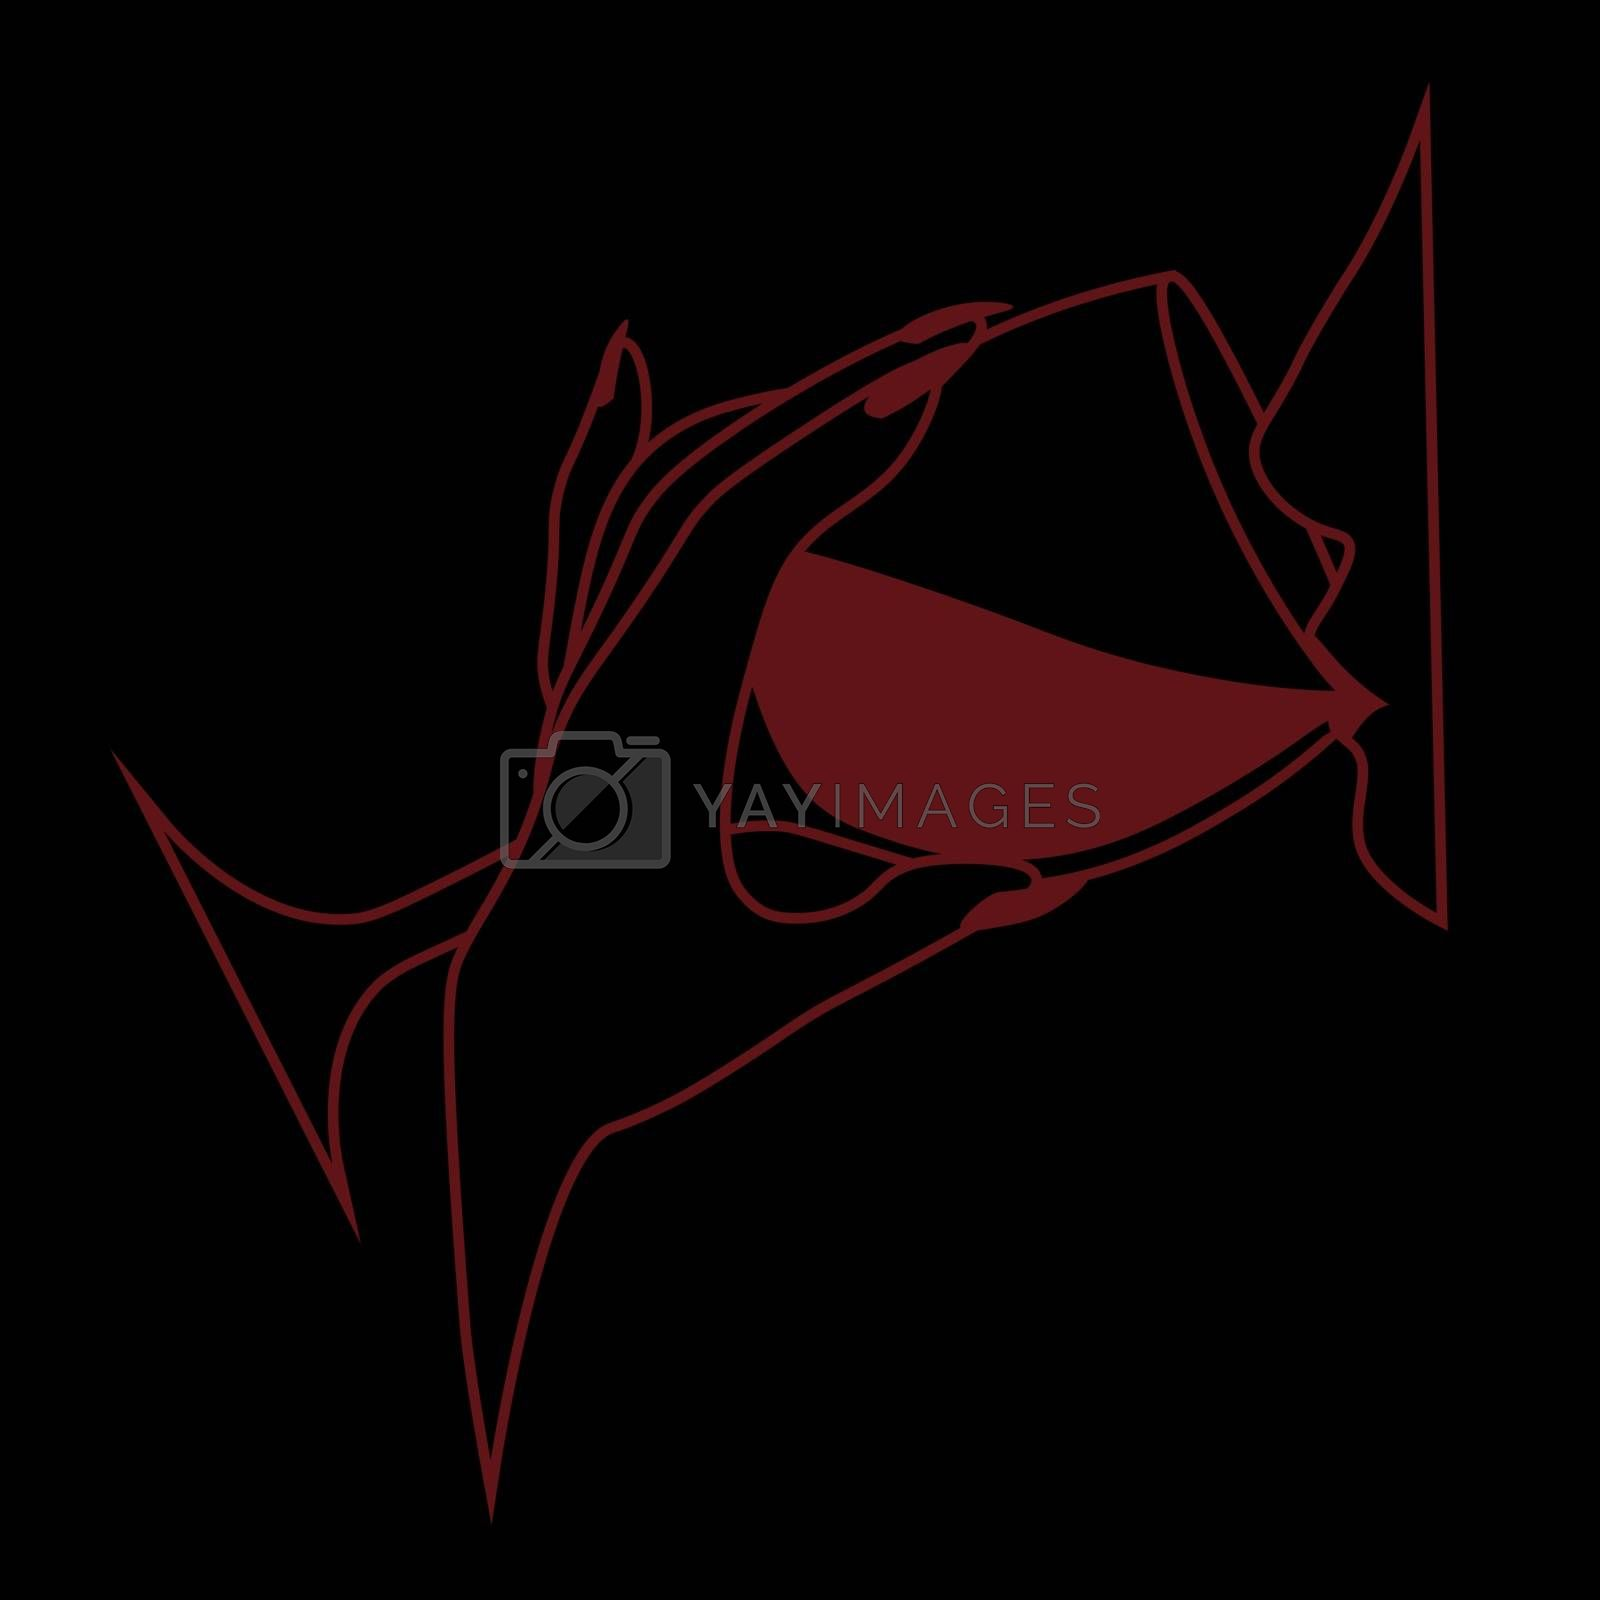 Minimal red line art with woman profile drinking wine on black background